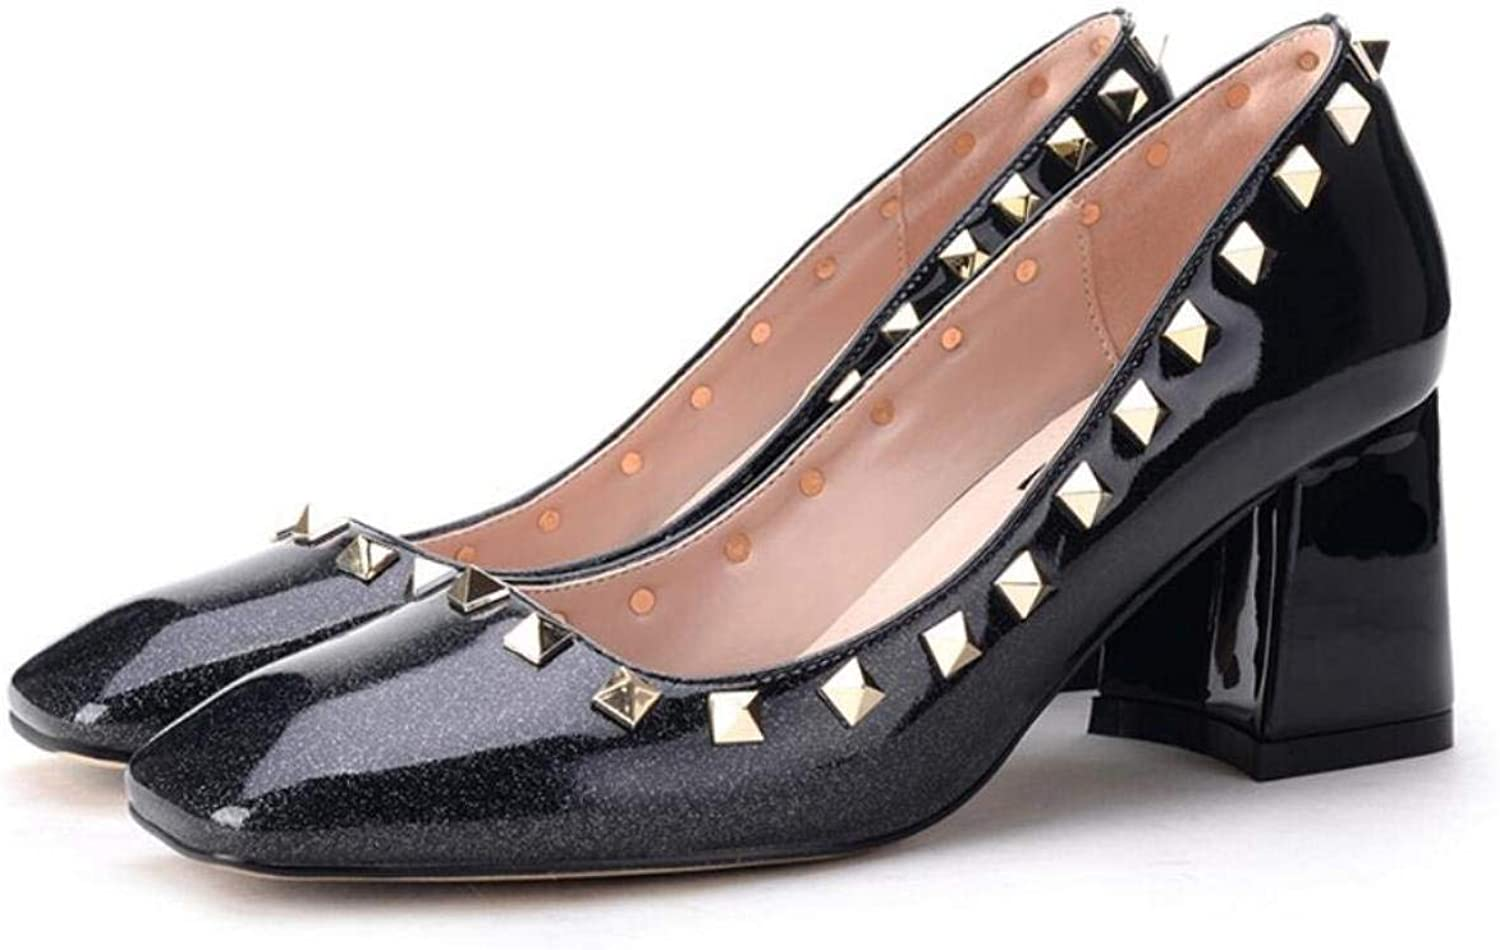 GouuoHi Womens Elegant Women High Heels New Rivets with The Square Head Shallow Mouth Casual Single Heel High Rivets Decoration Gradient color shoes